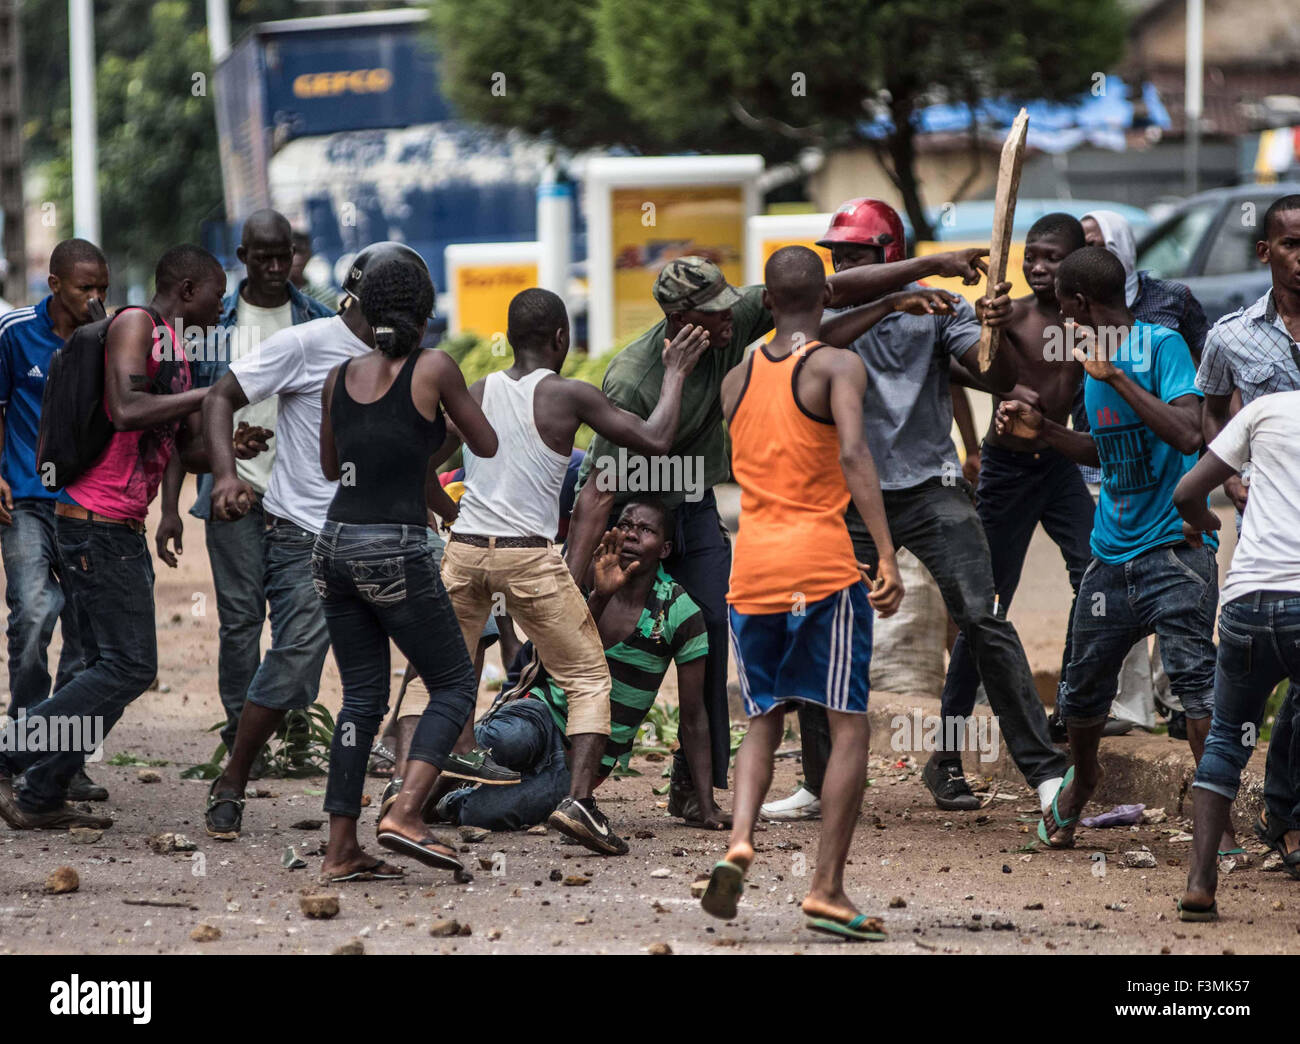 A man is beaten up during political violence in Conakry, Guinea ahead of elections in 2010. - Stock Image